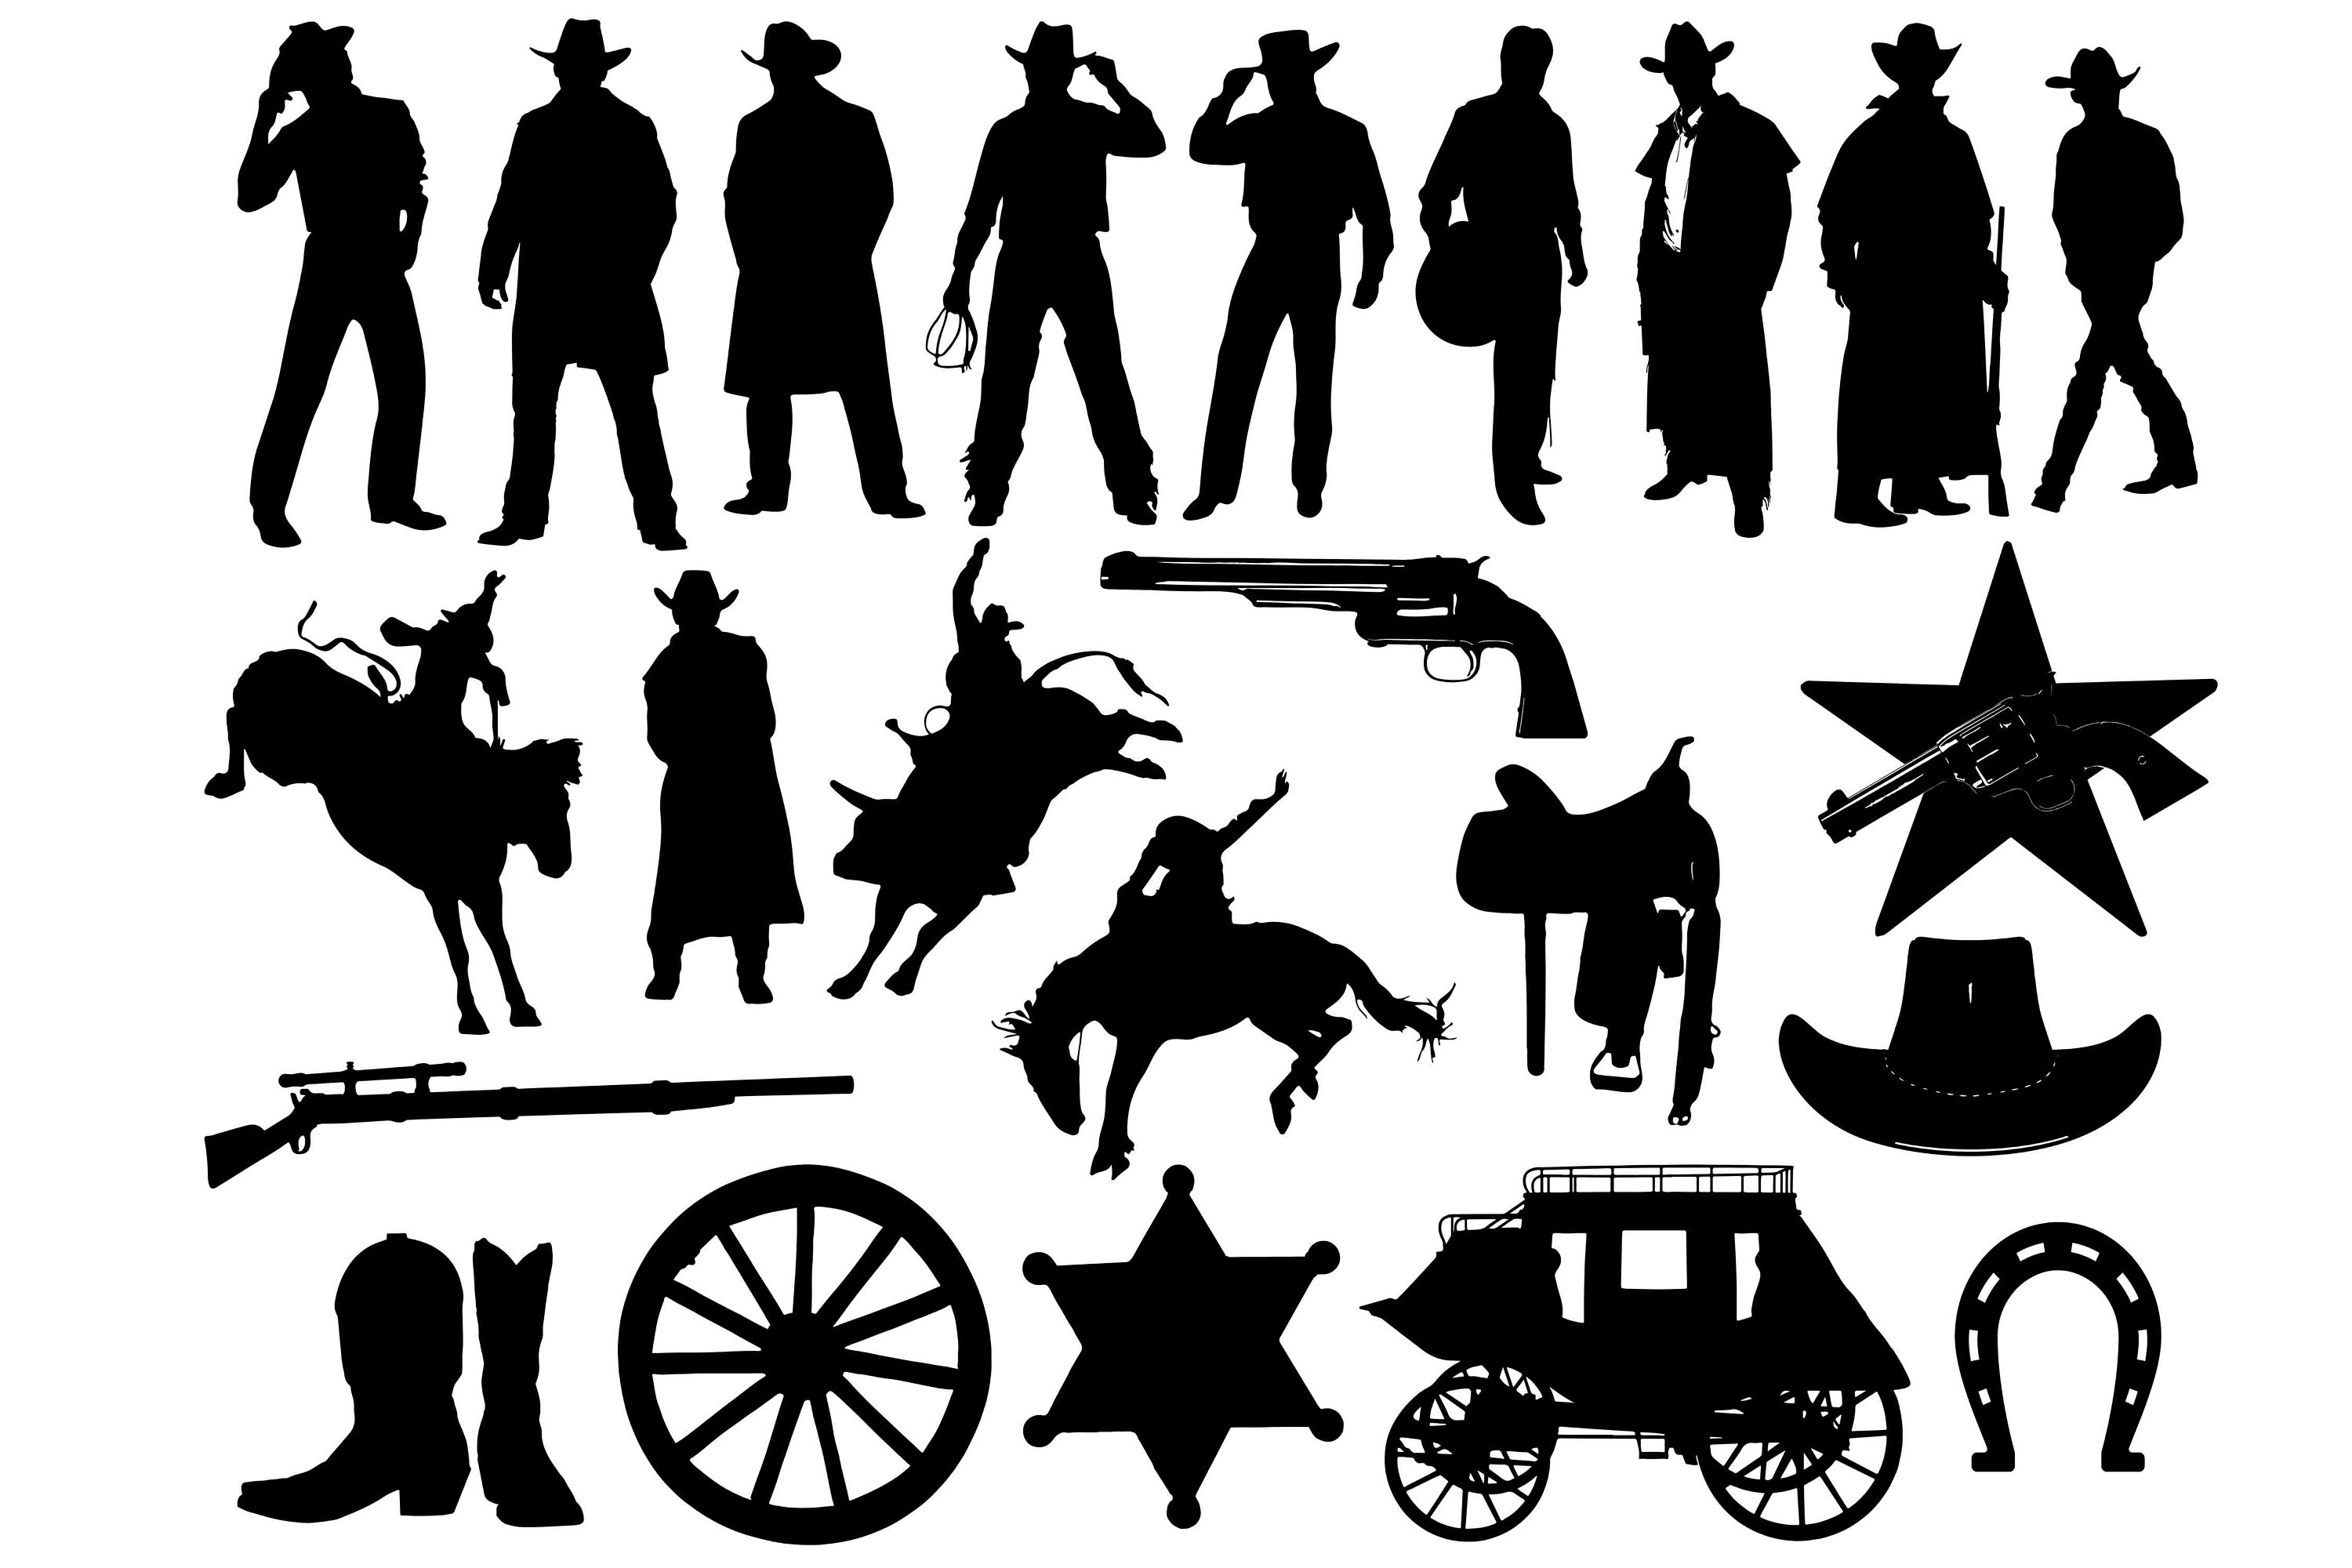 Cowboy Silhouette, Cowboy Clip Art, Cowboy illustration, Cowboy SVG, Rodeo  svg, Cowboy cut file, Cowboy cricut, Cowboy vector wild west svg.